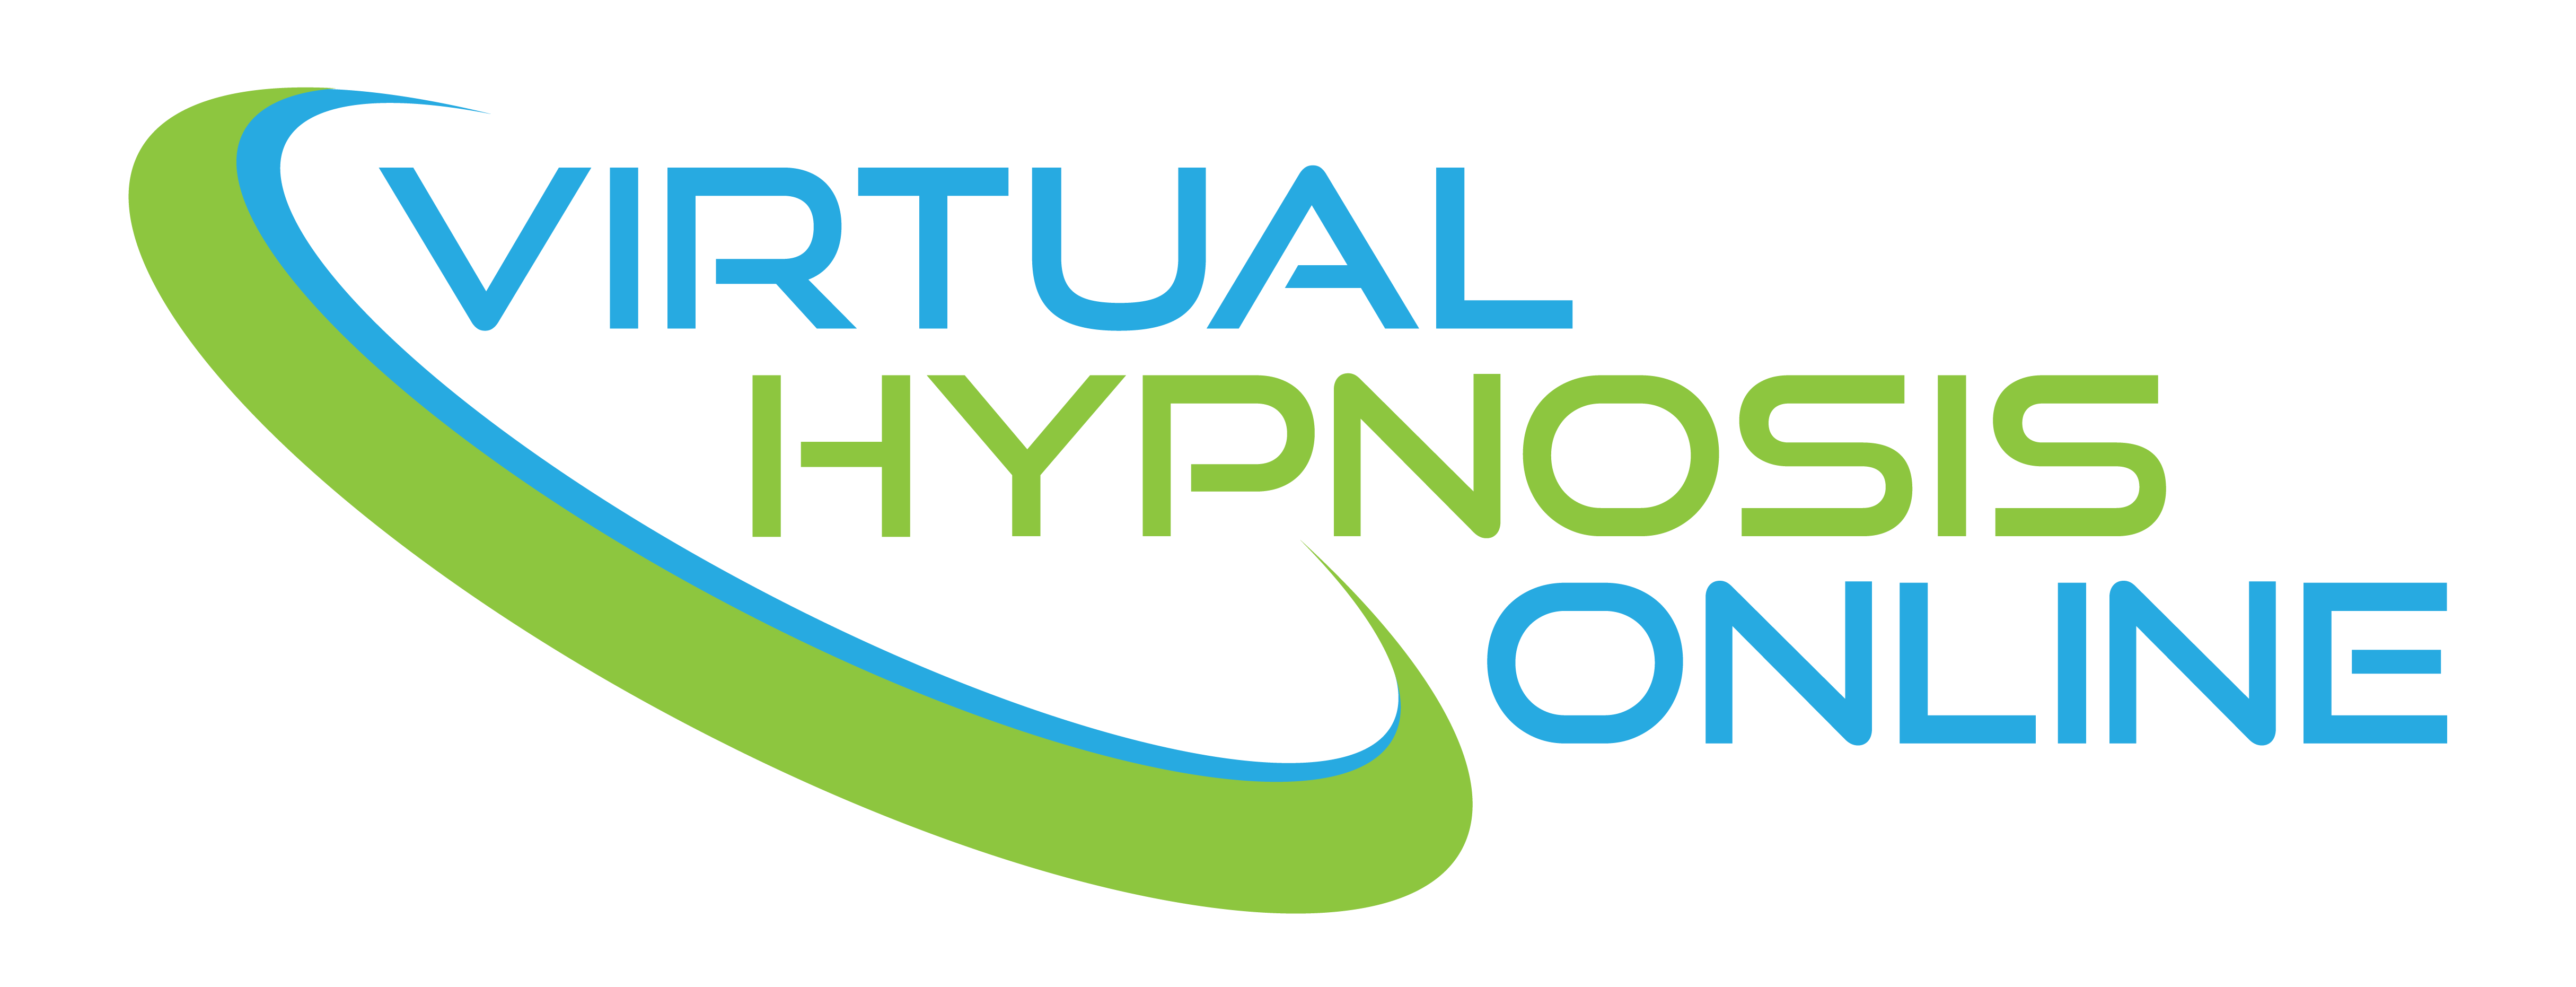 Virtual Hypnosis Online